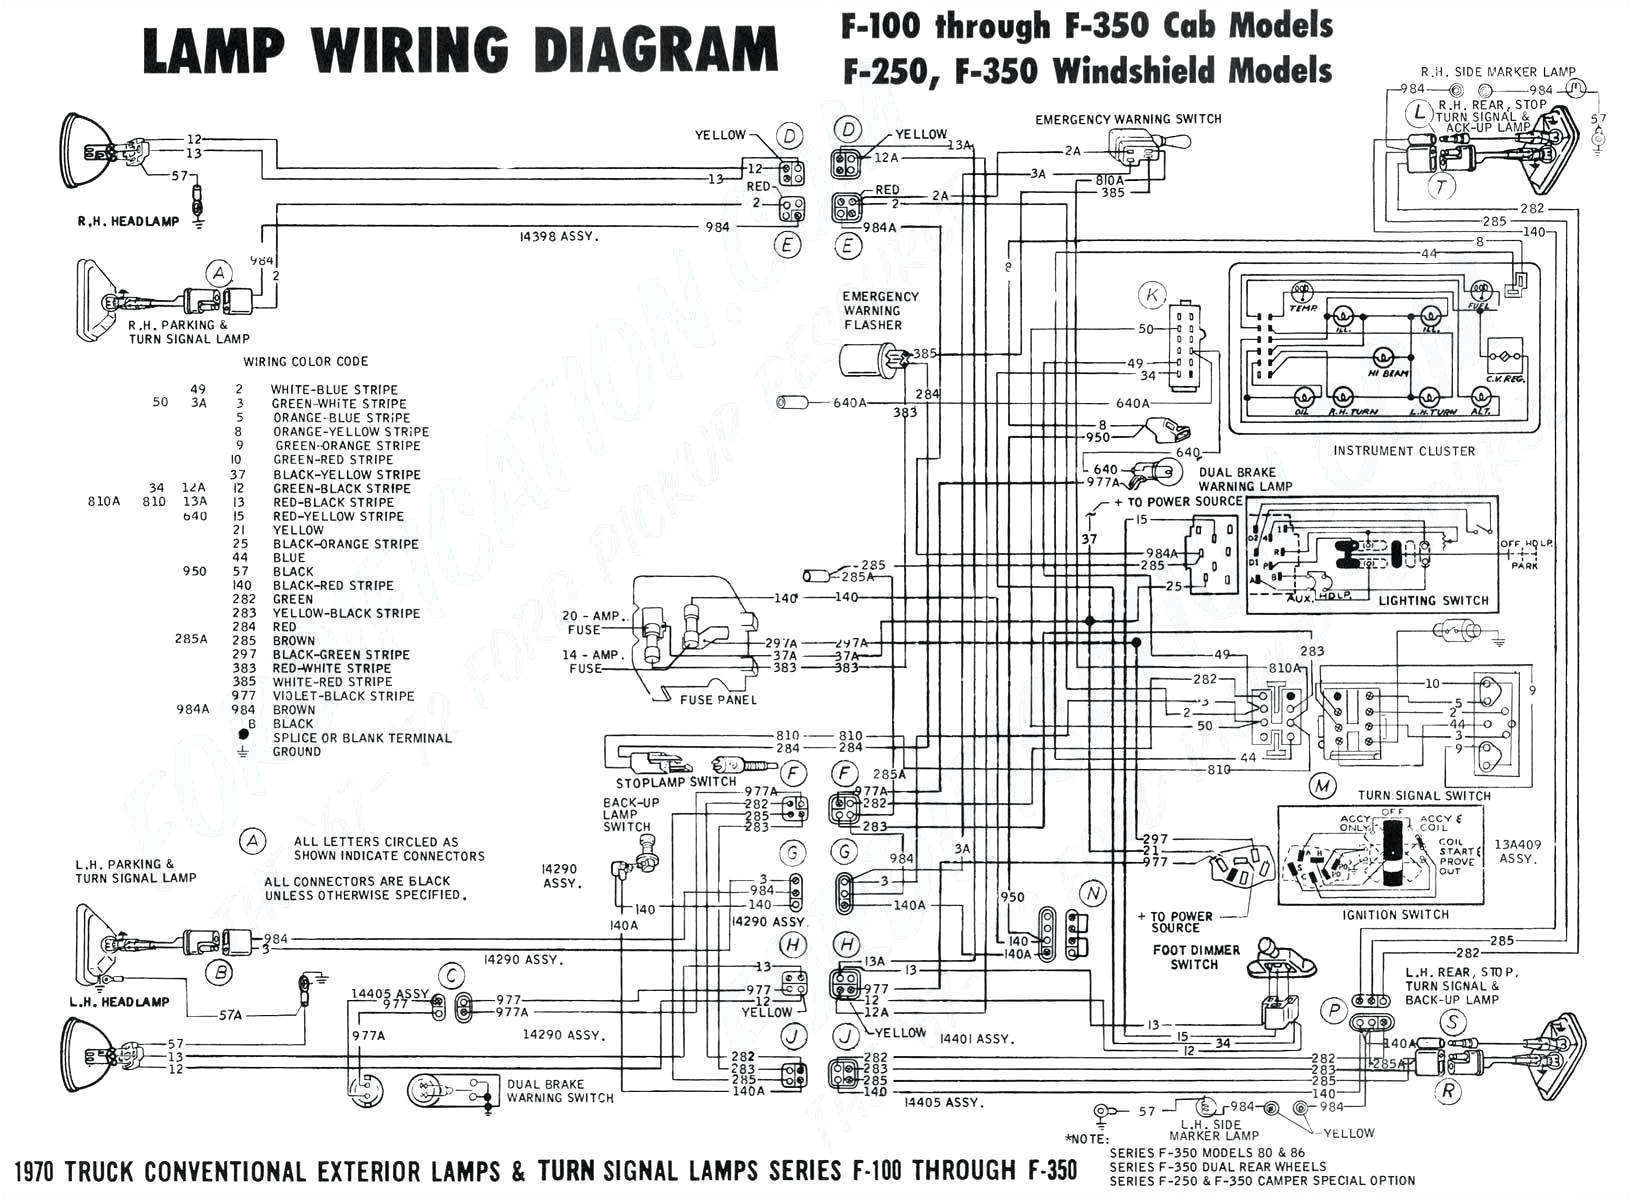 1941 buick wiring harness wiring diagram center 1931 buick wiring diagram wiring diagram view 1941 buick